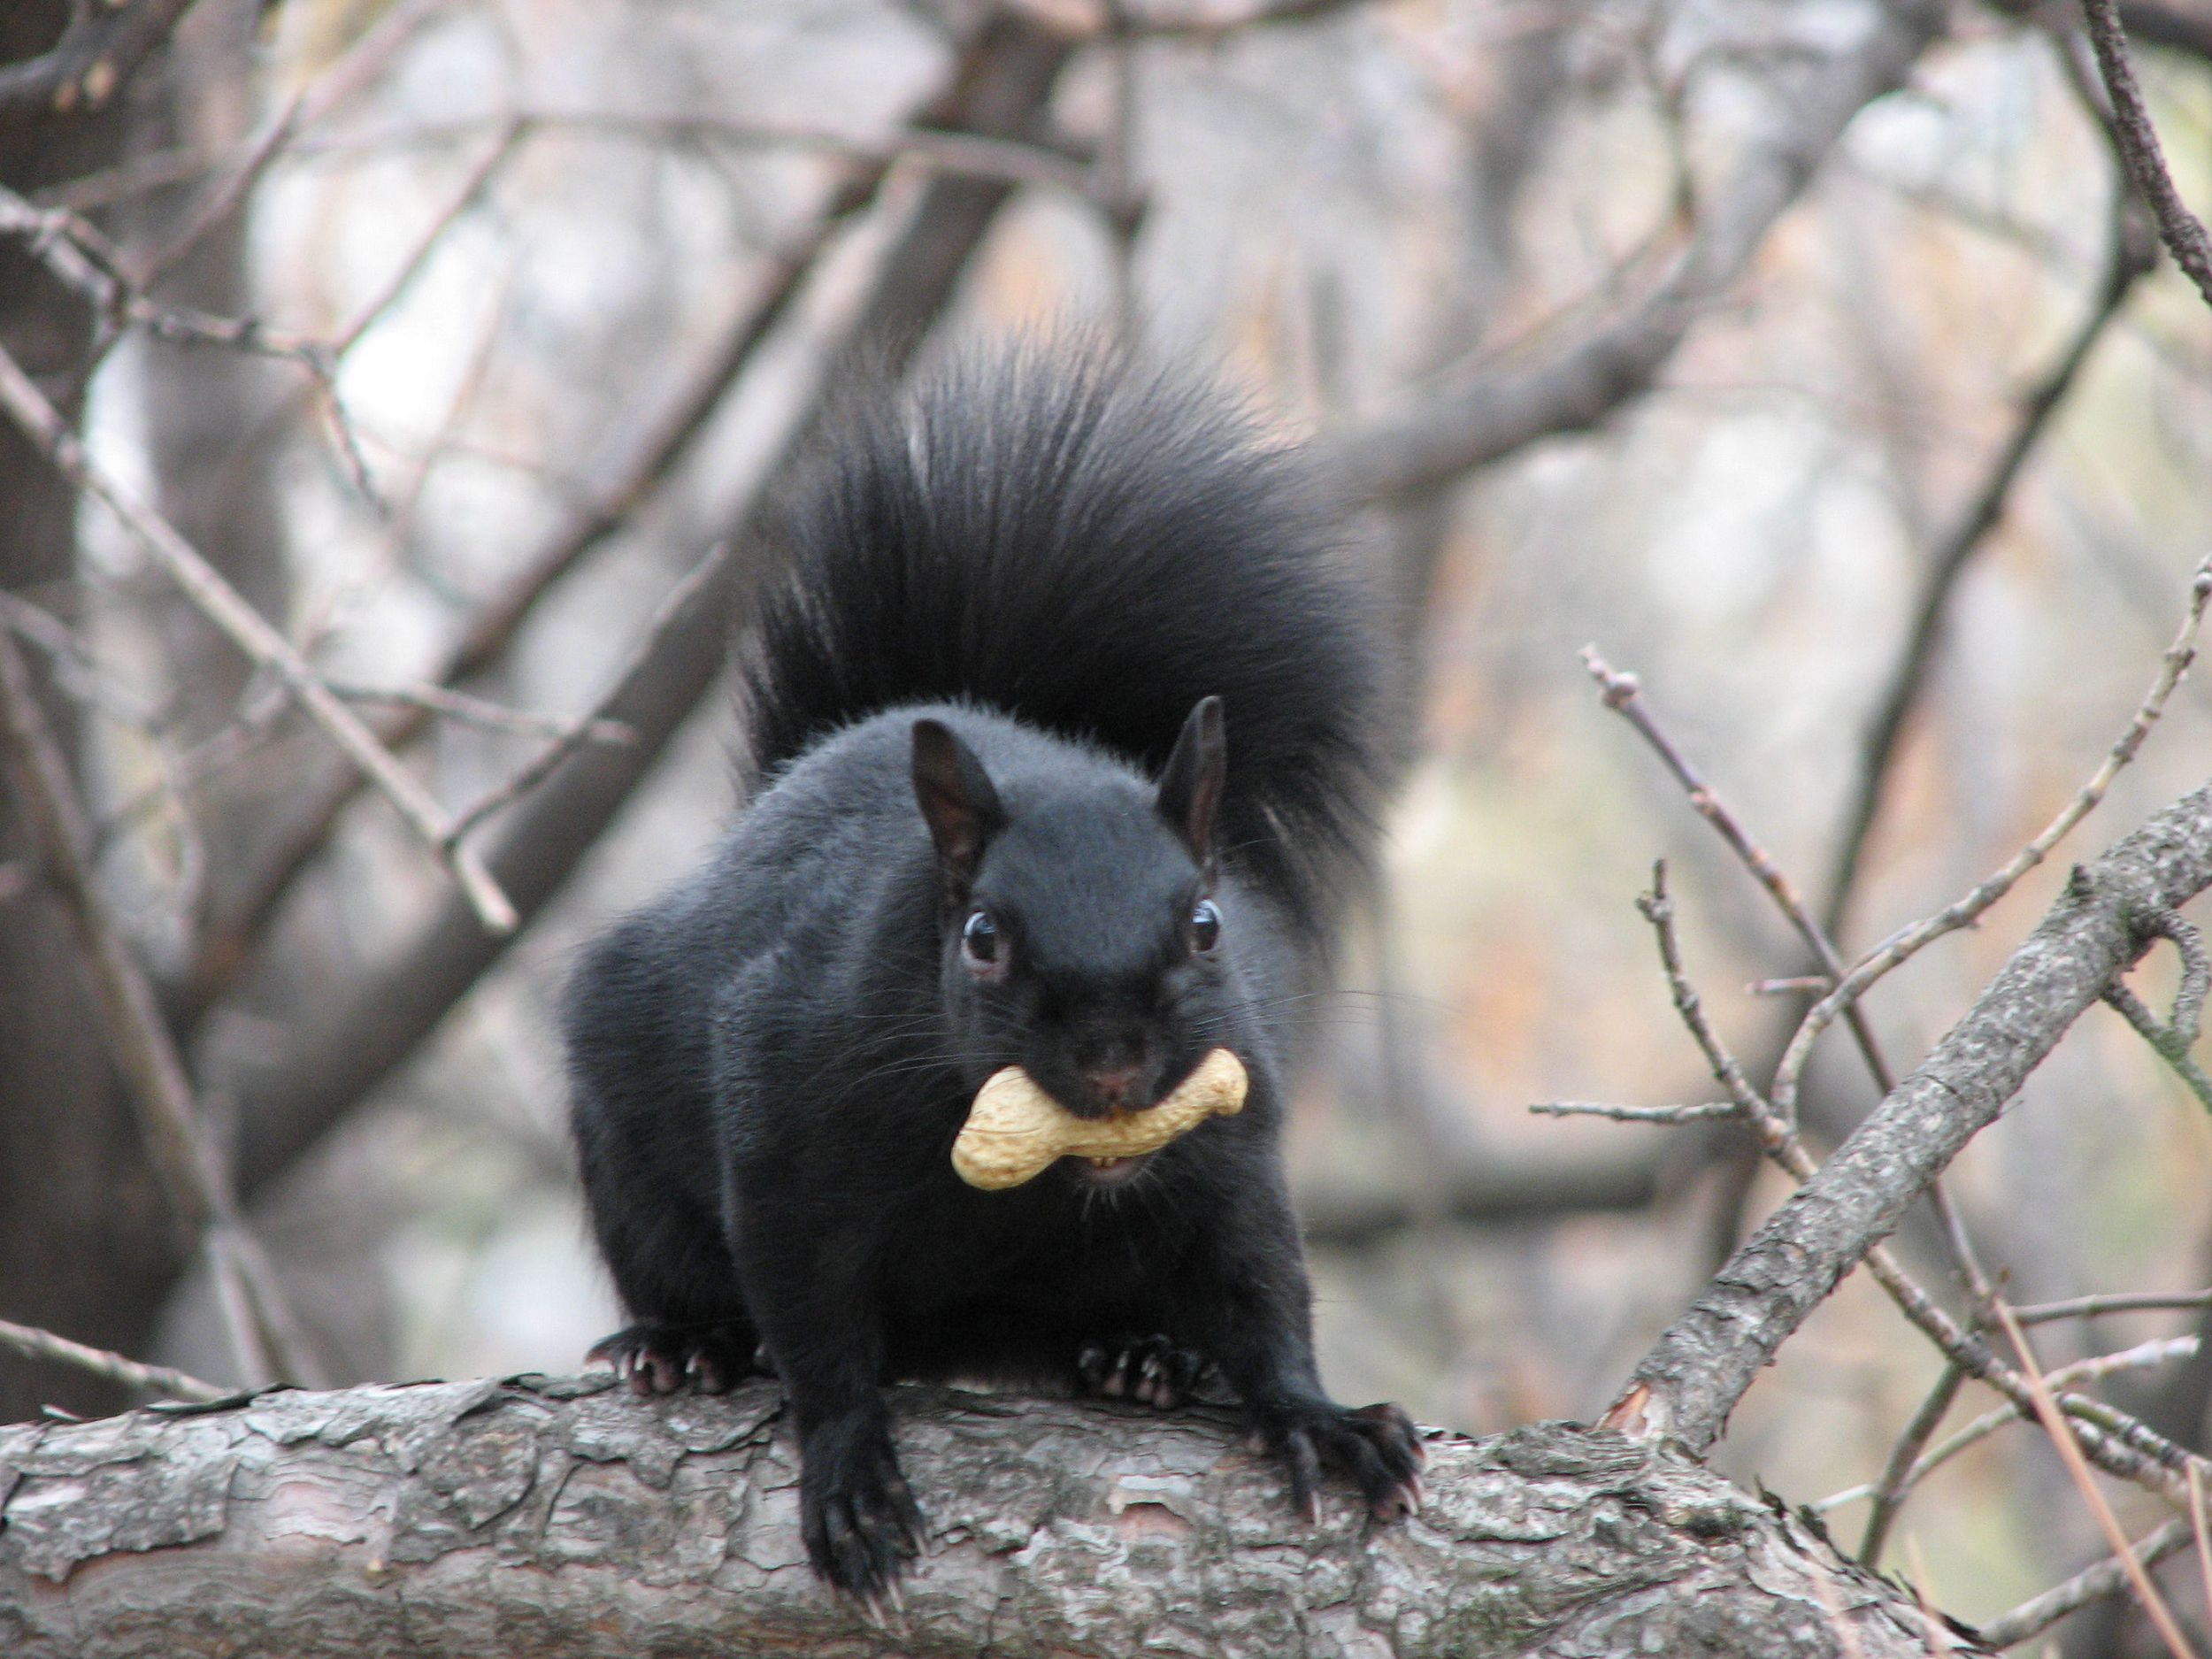 Black Squirrel Images